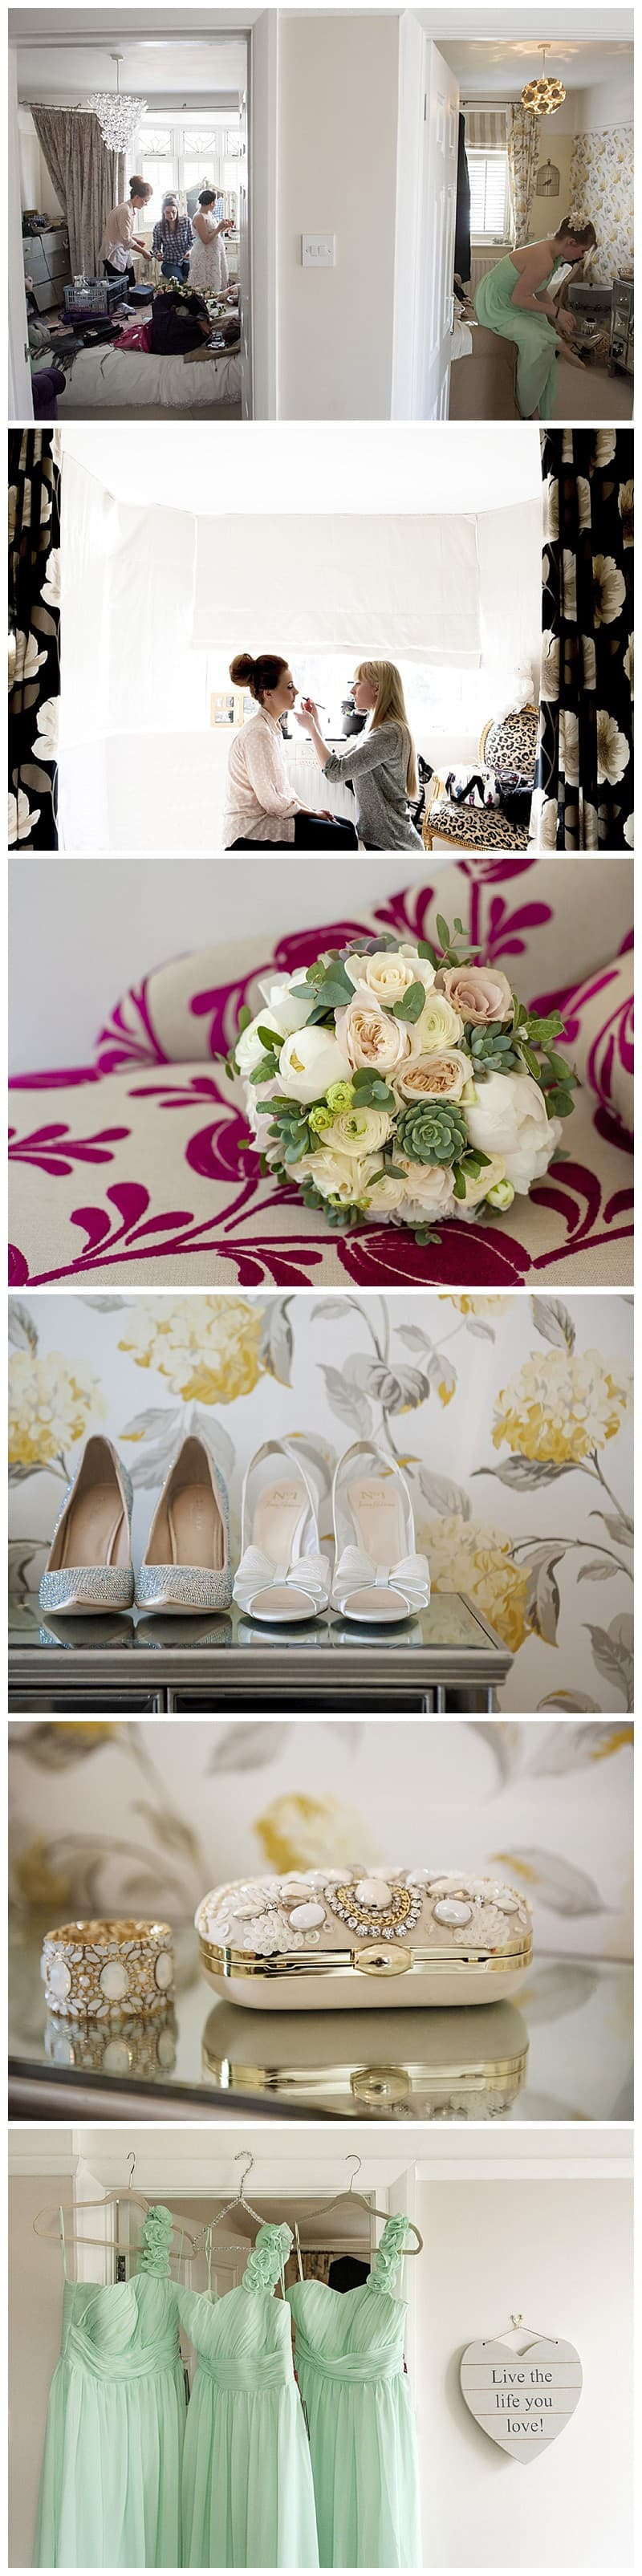 Stuart & Hayley De Vere's Hotel, Surrey Wedding, Benjamin Wetherall Photography | London Wedding Photography0002